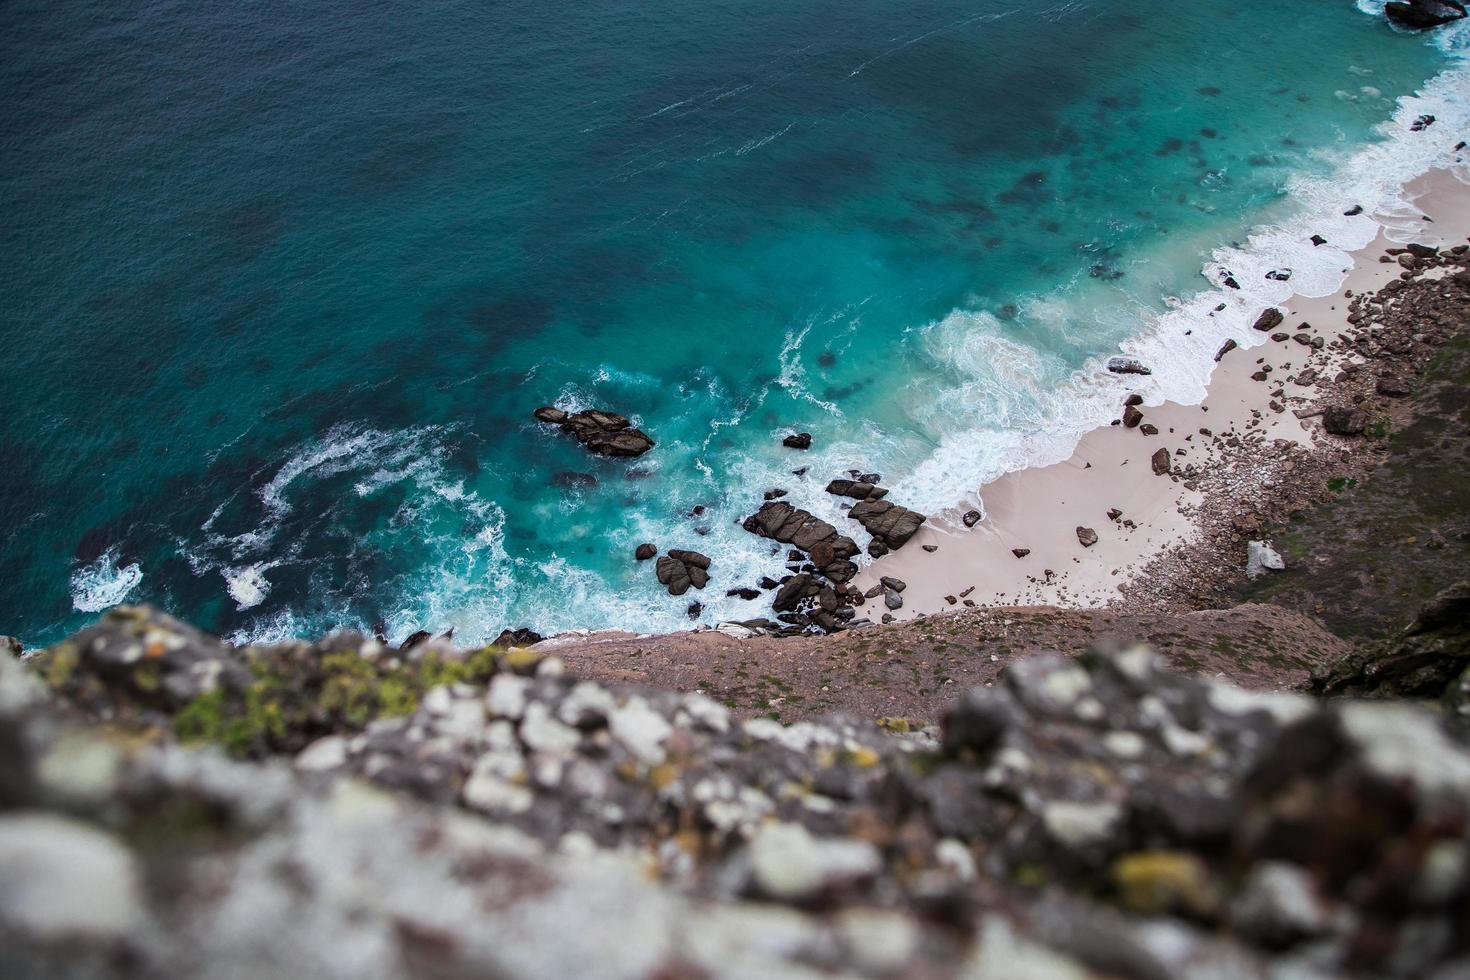 Looking down on rocky beach photo